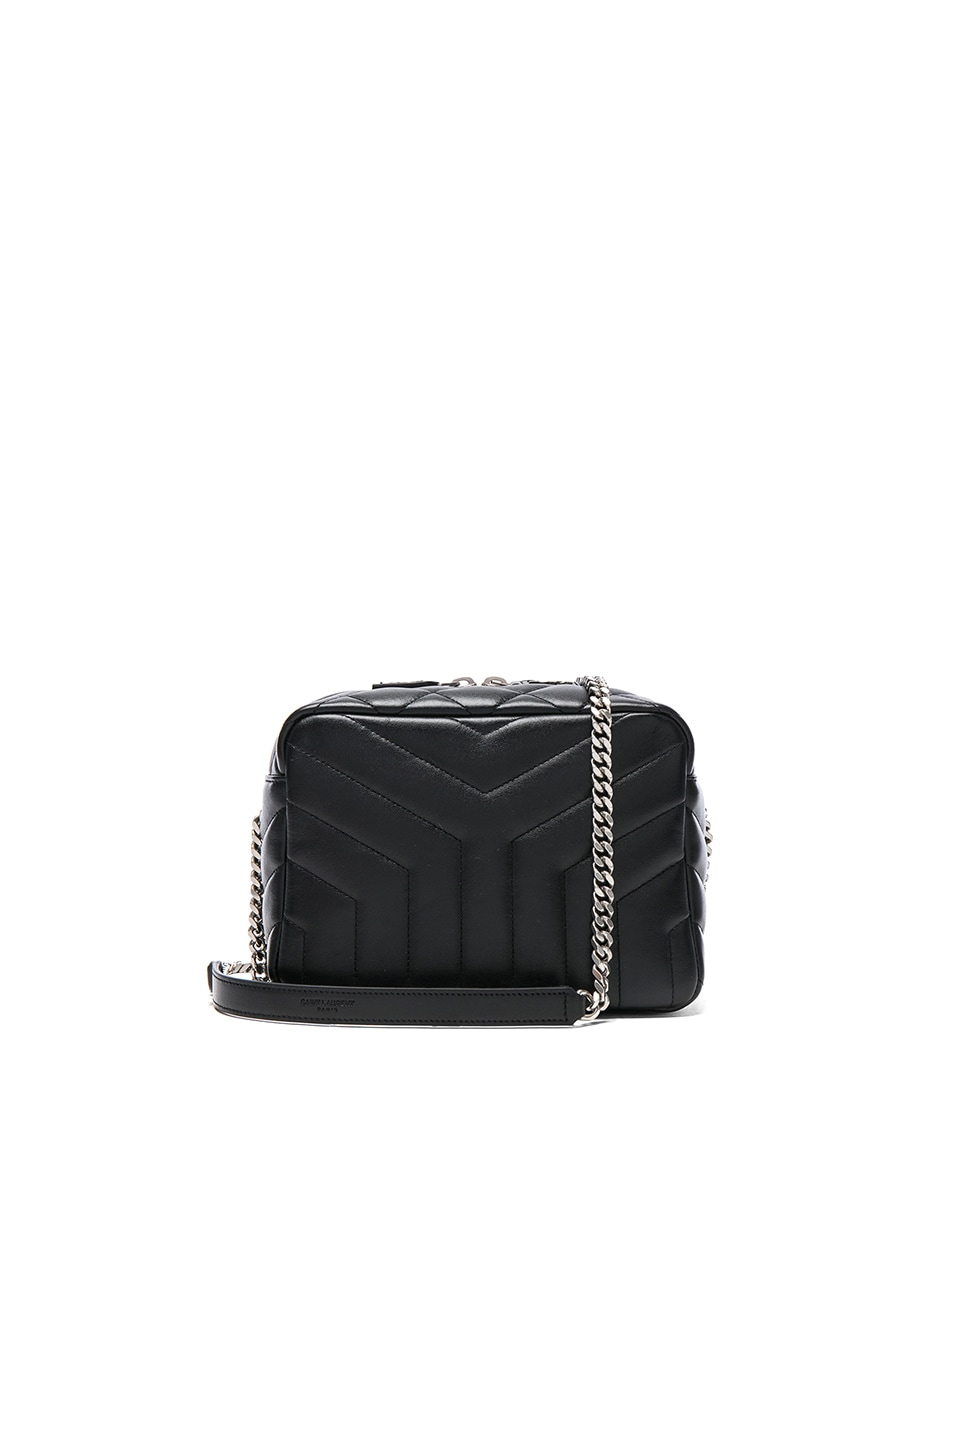 Image 1 of Saint Laurent Small Loulou Top Handle Bowling Bag in Black